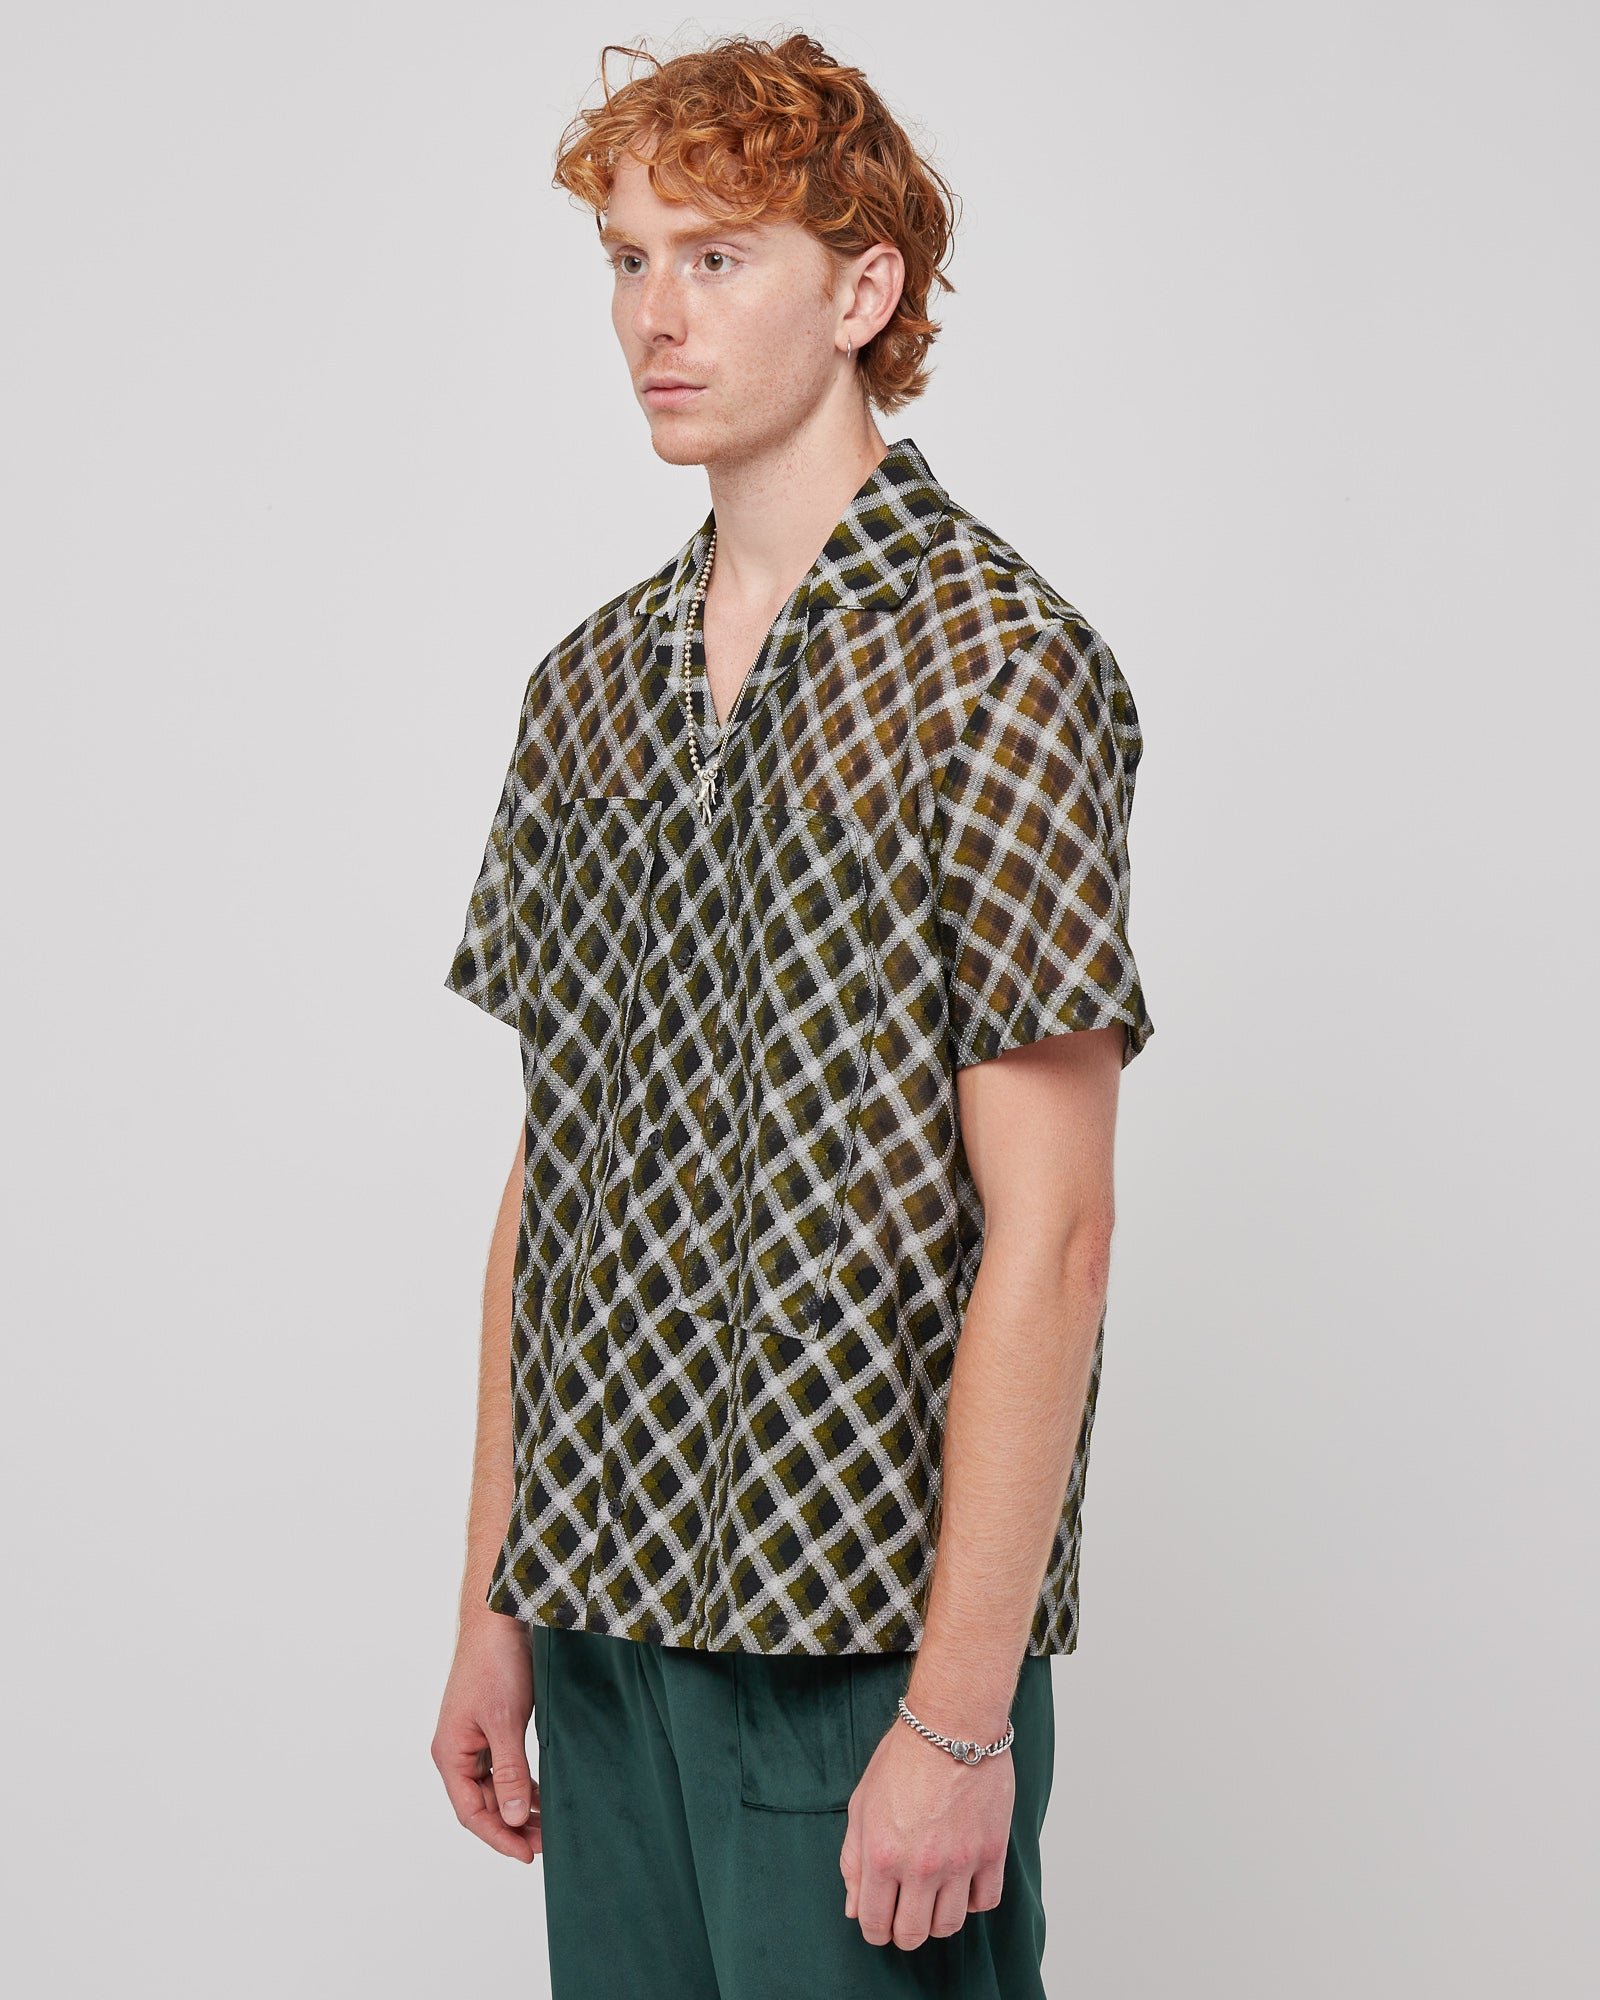 Illusion Cargo S/S T-Shirt in Green